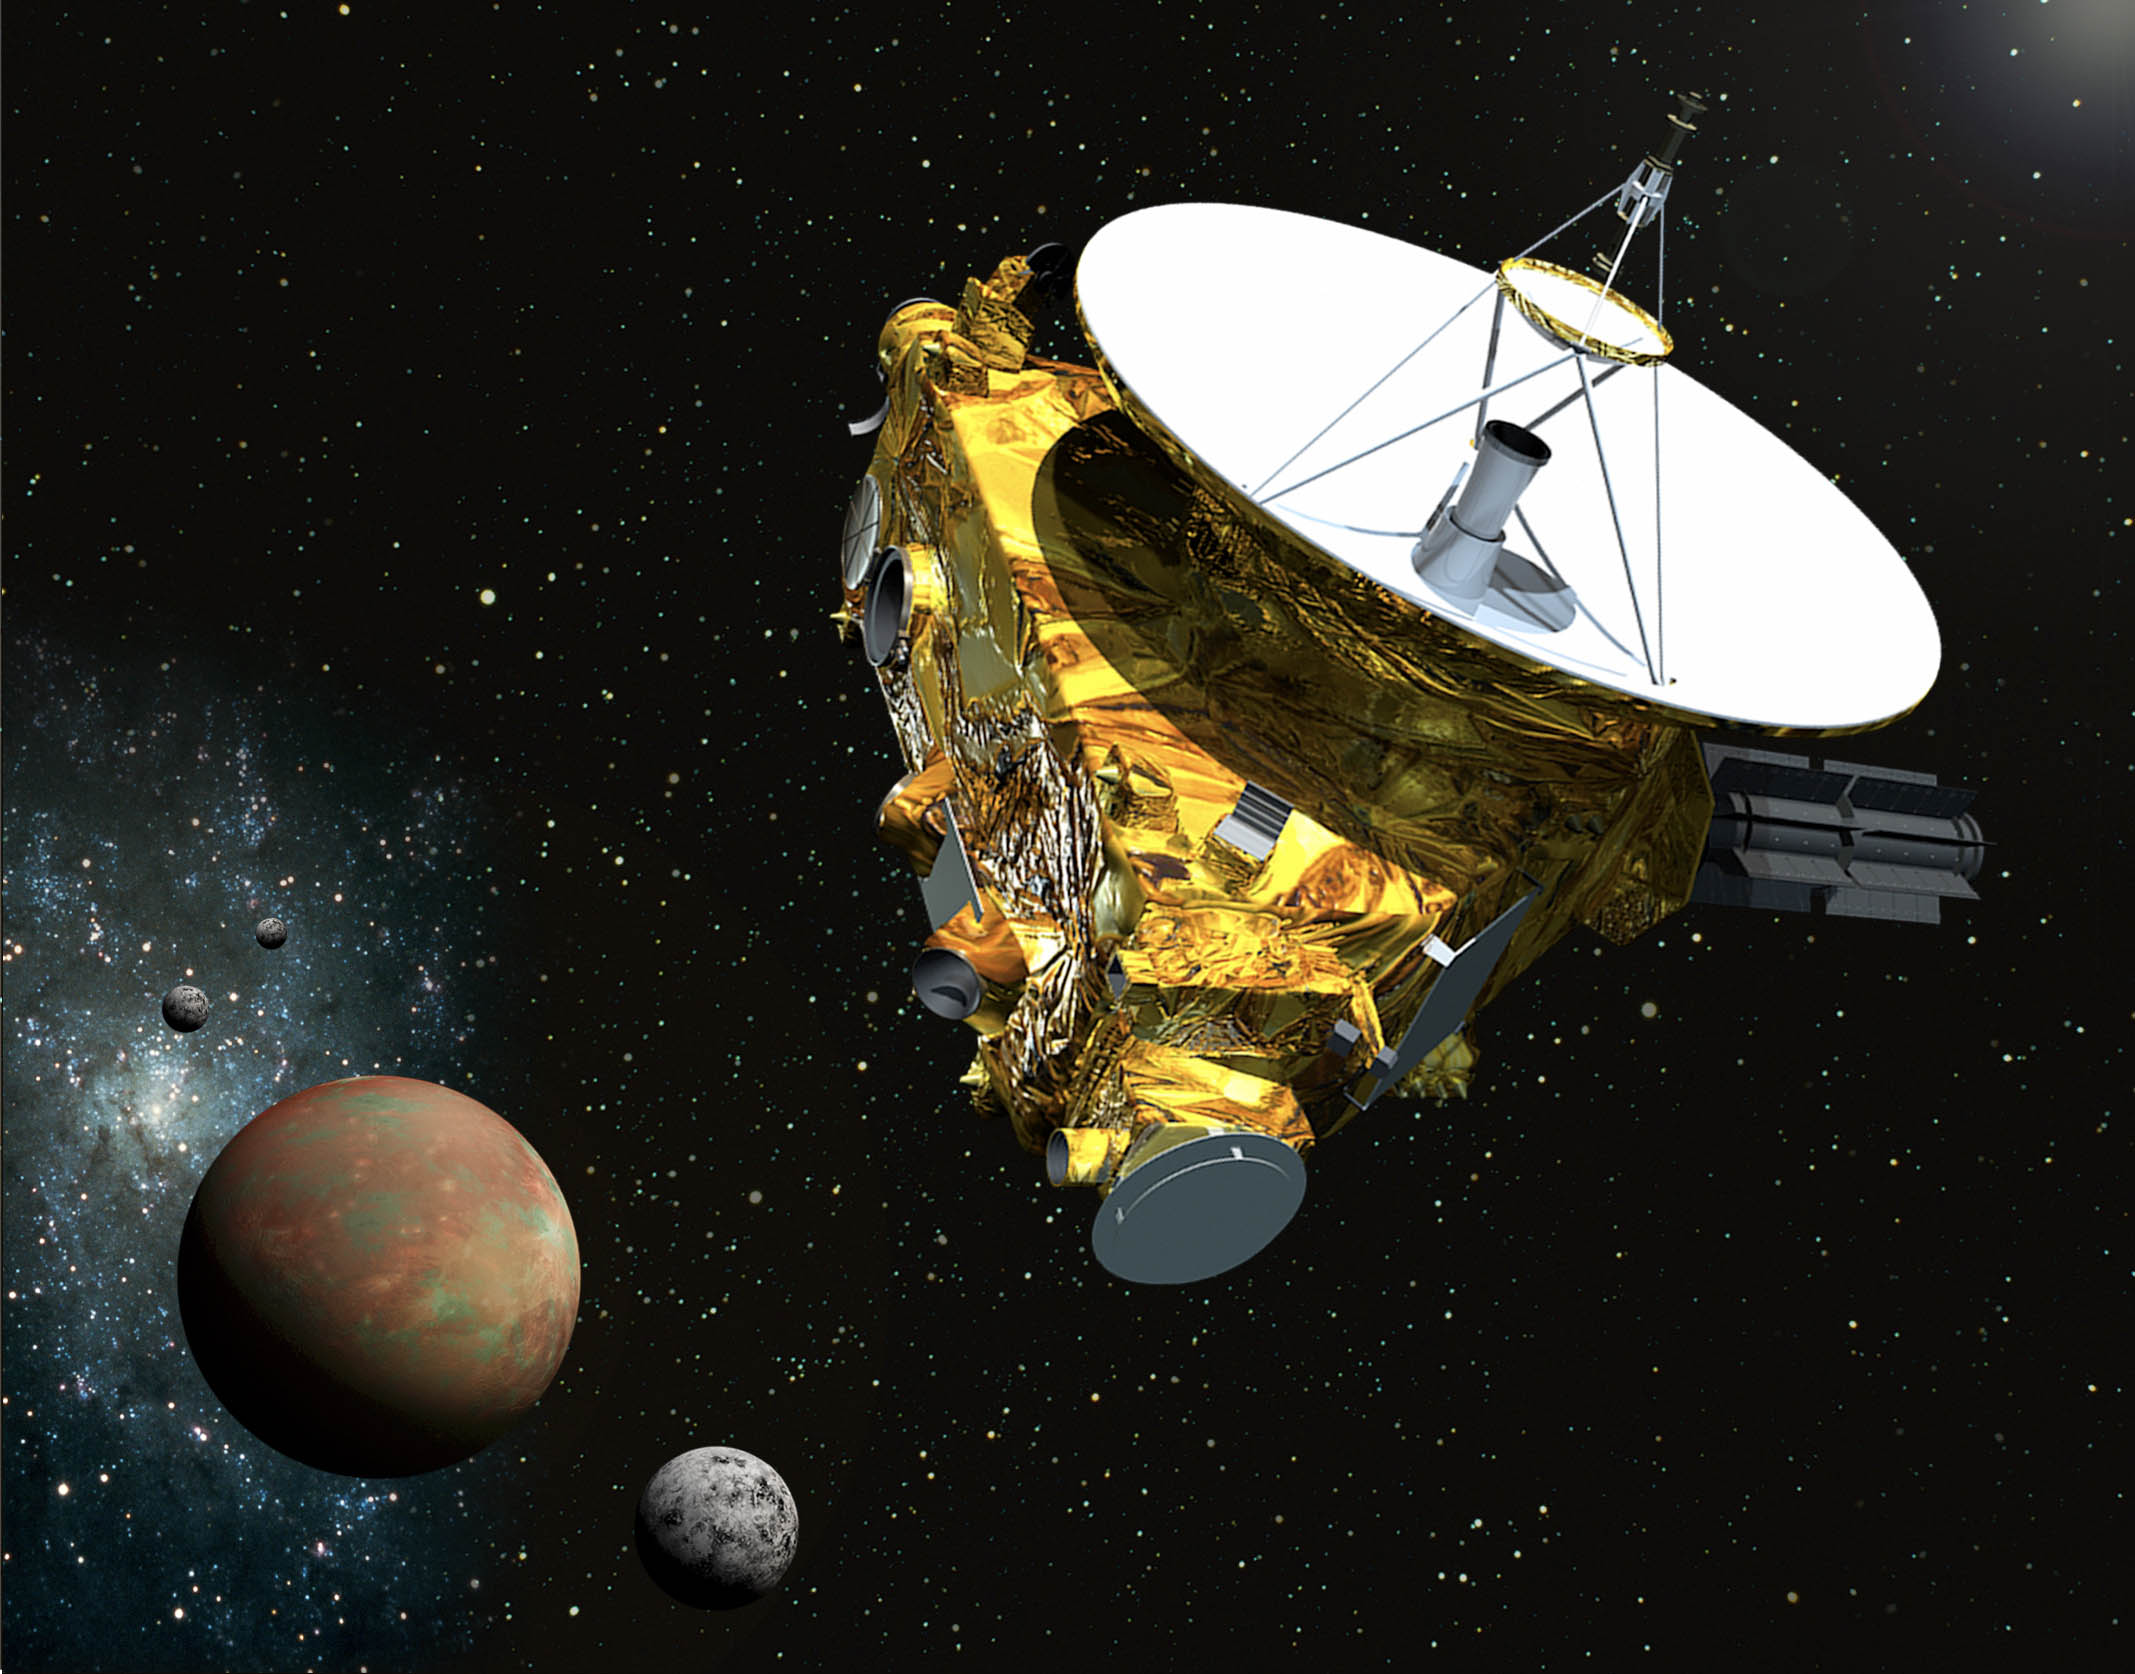 Playstation's Processor MIPS R3000 CPU Guides Space Probe To Pluto.